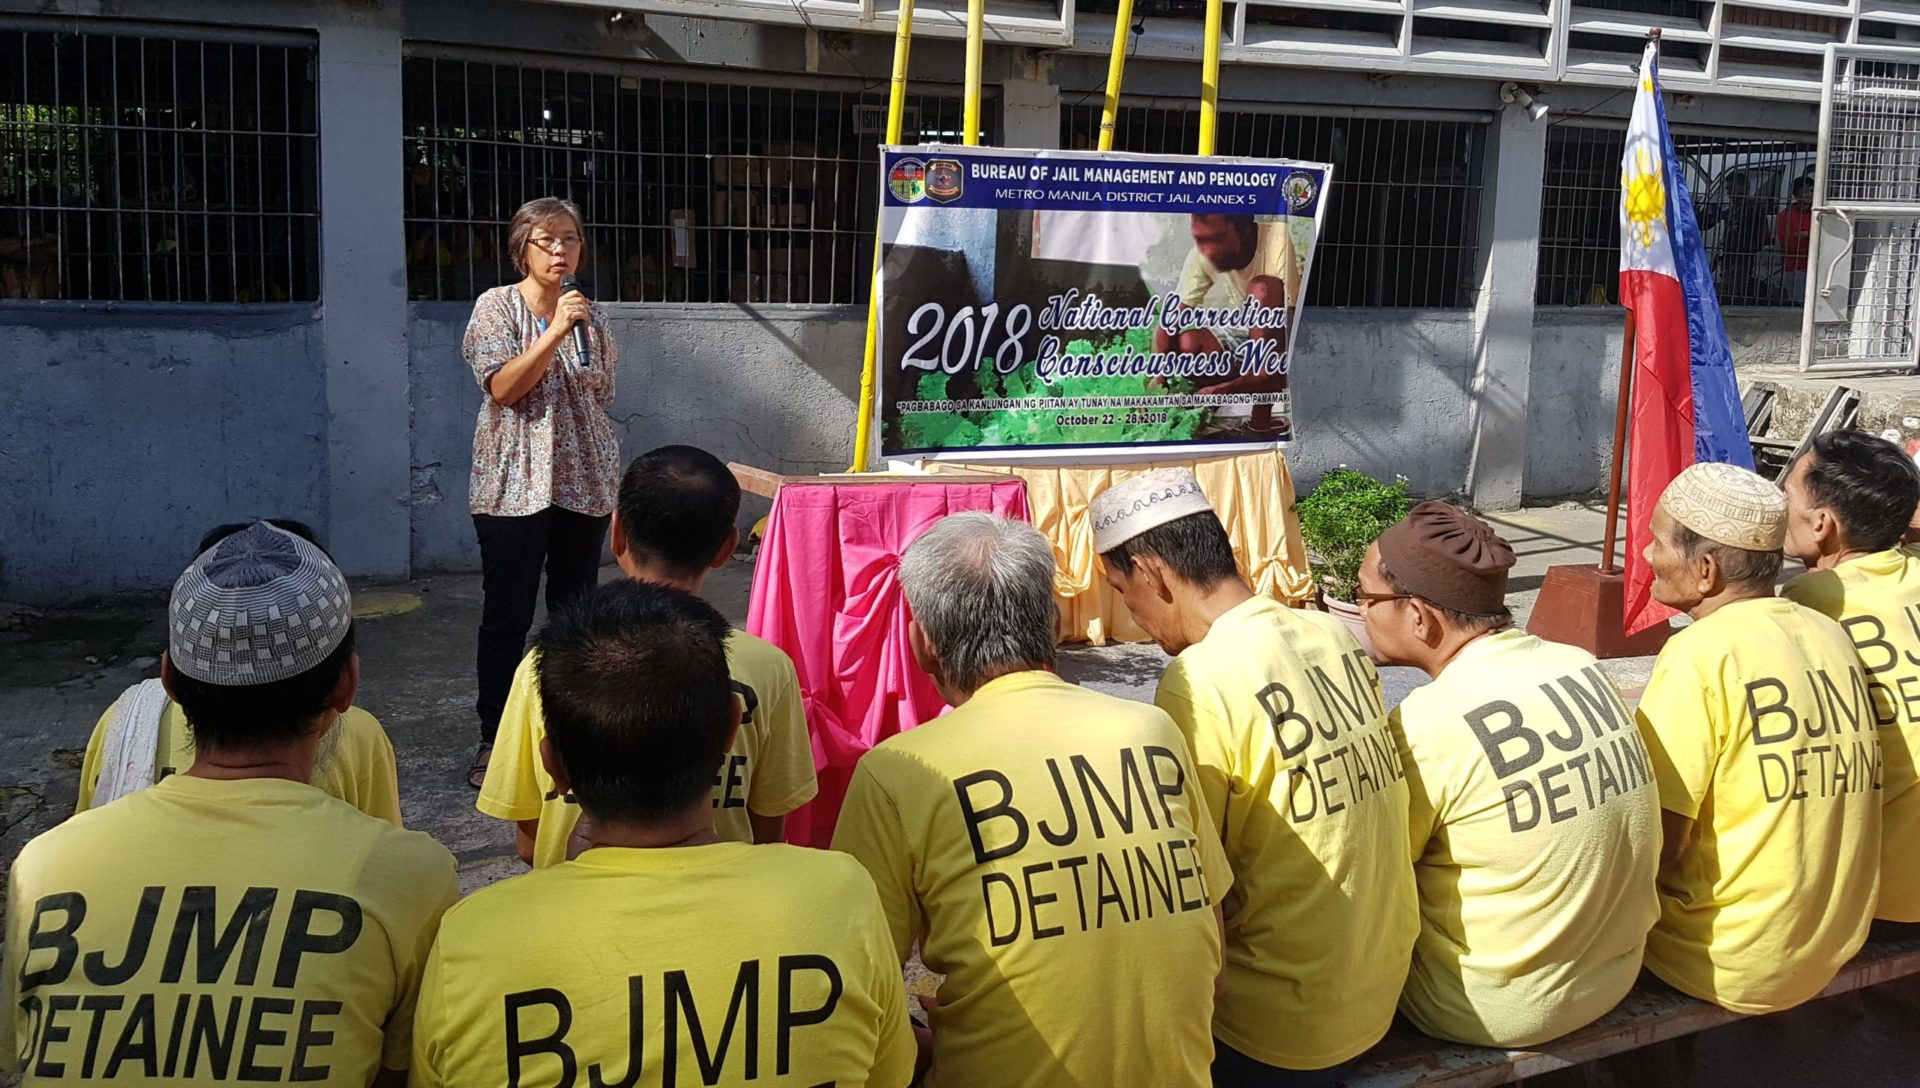 MAG conducts Medical and Dental Mission for PDLs during the National Correctional Consciousness Week (NACOCOW) 2018